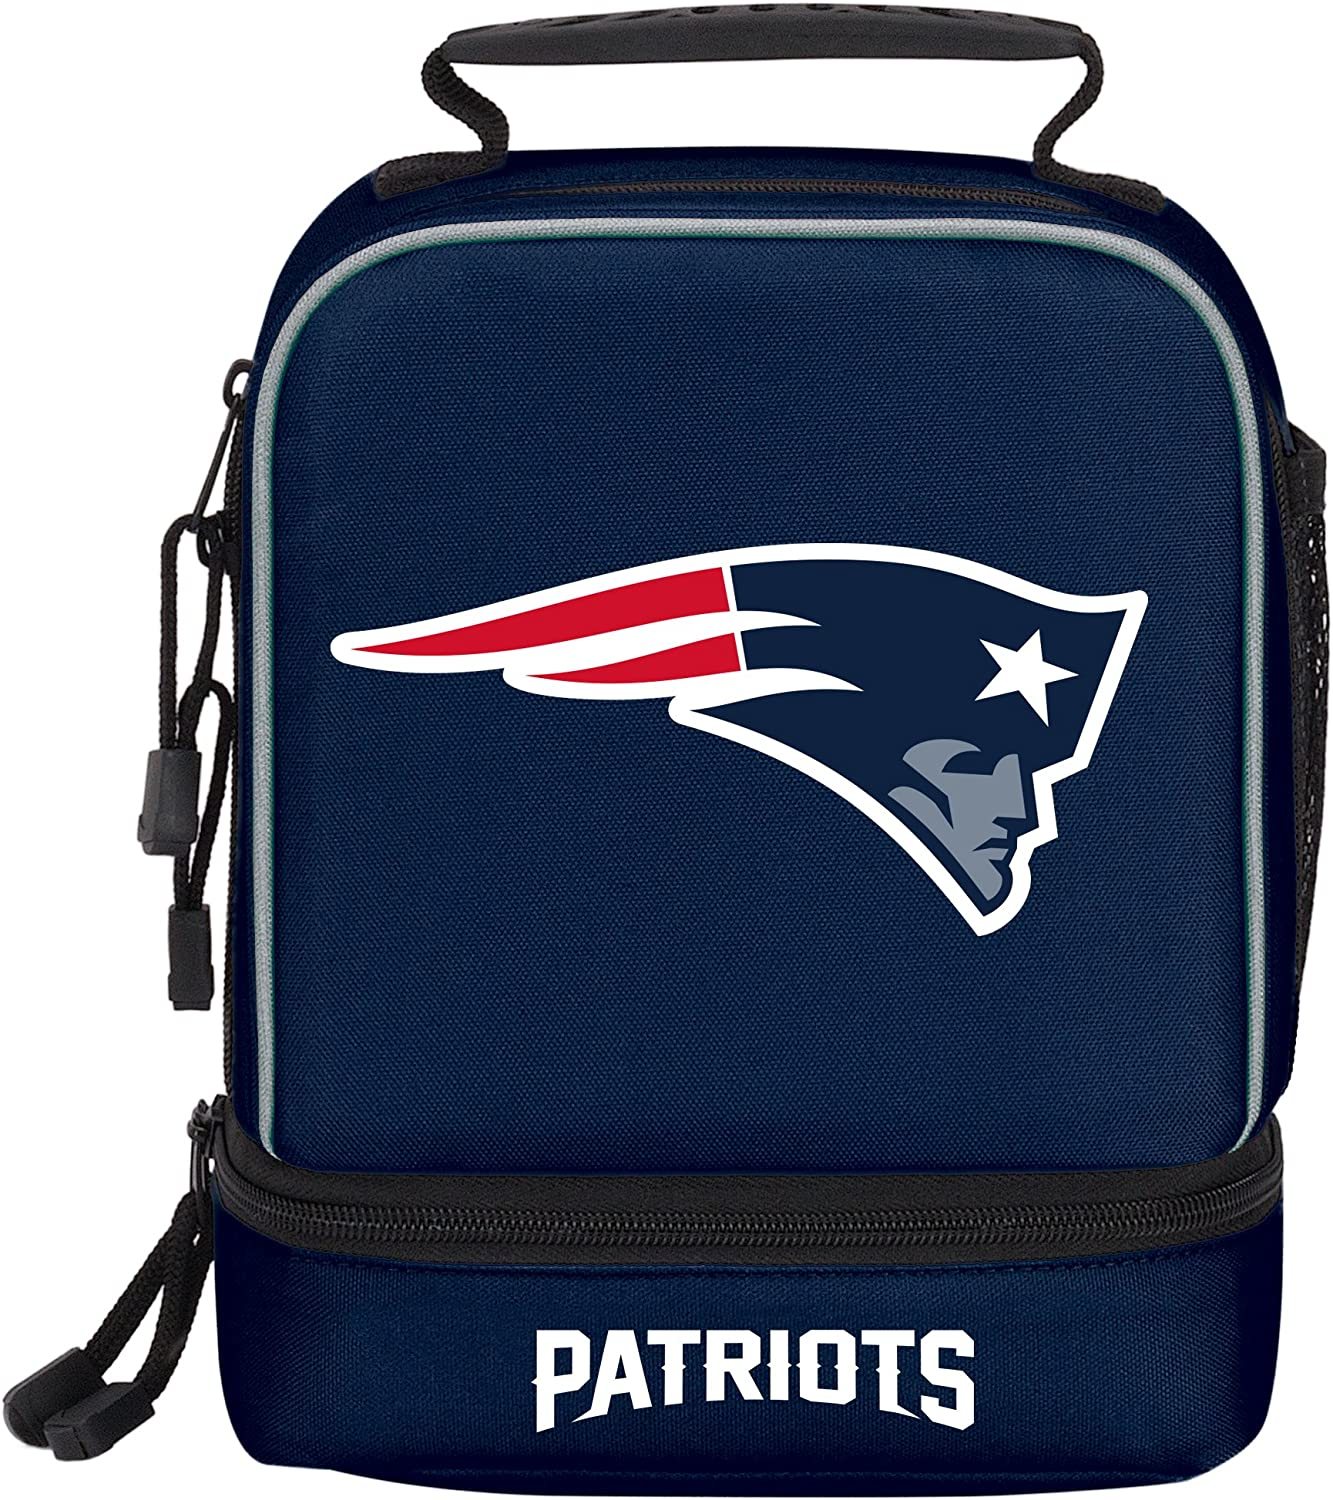 """Officially Licensed NFL """"Spark"""" Lunch Kit, Multi Color, 9"""" x 4.5"""" x 7.25"""""""